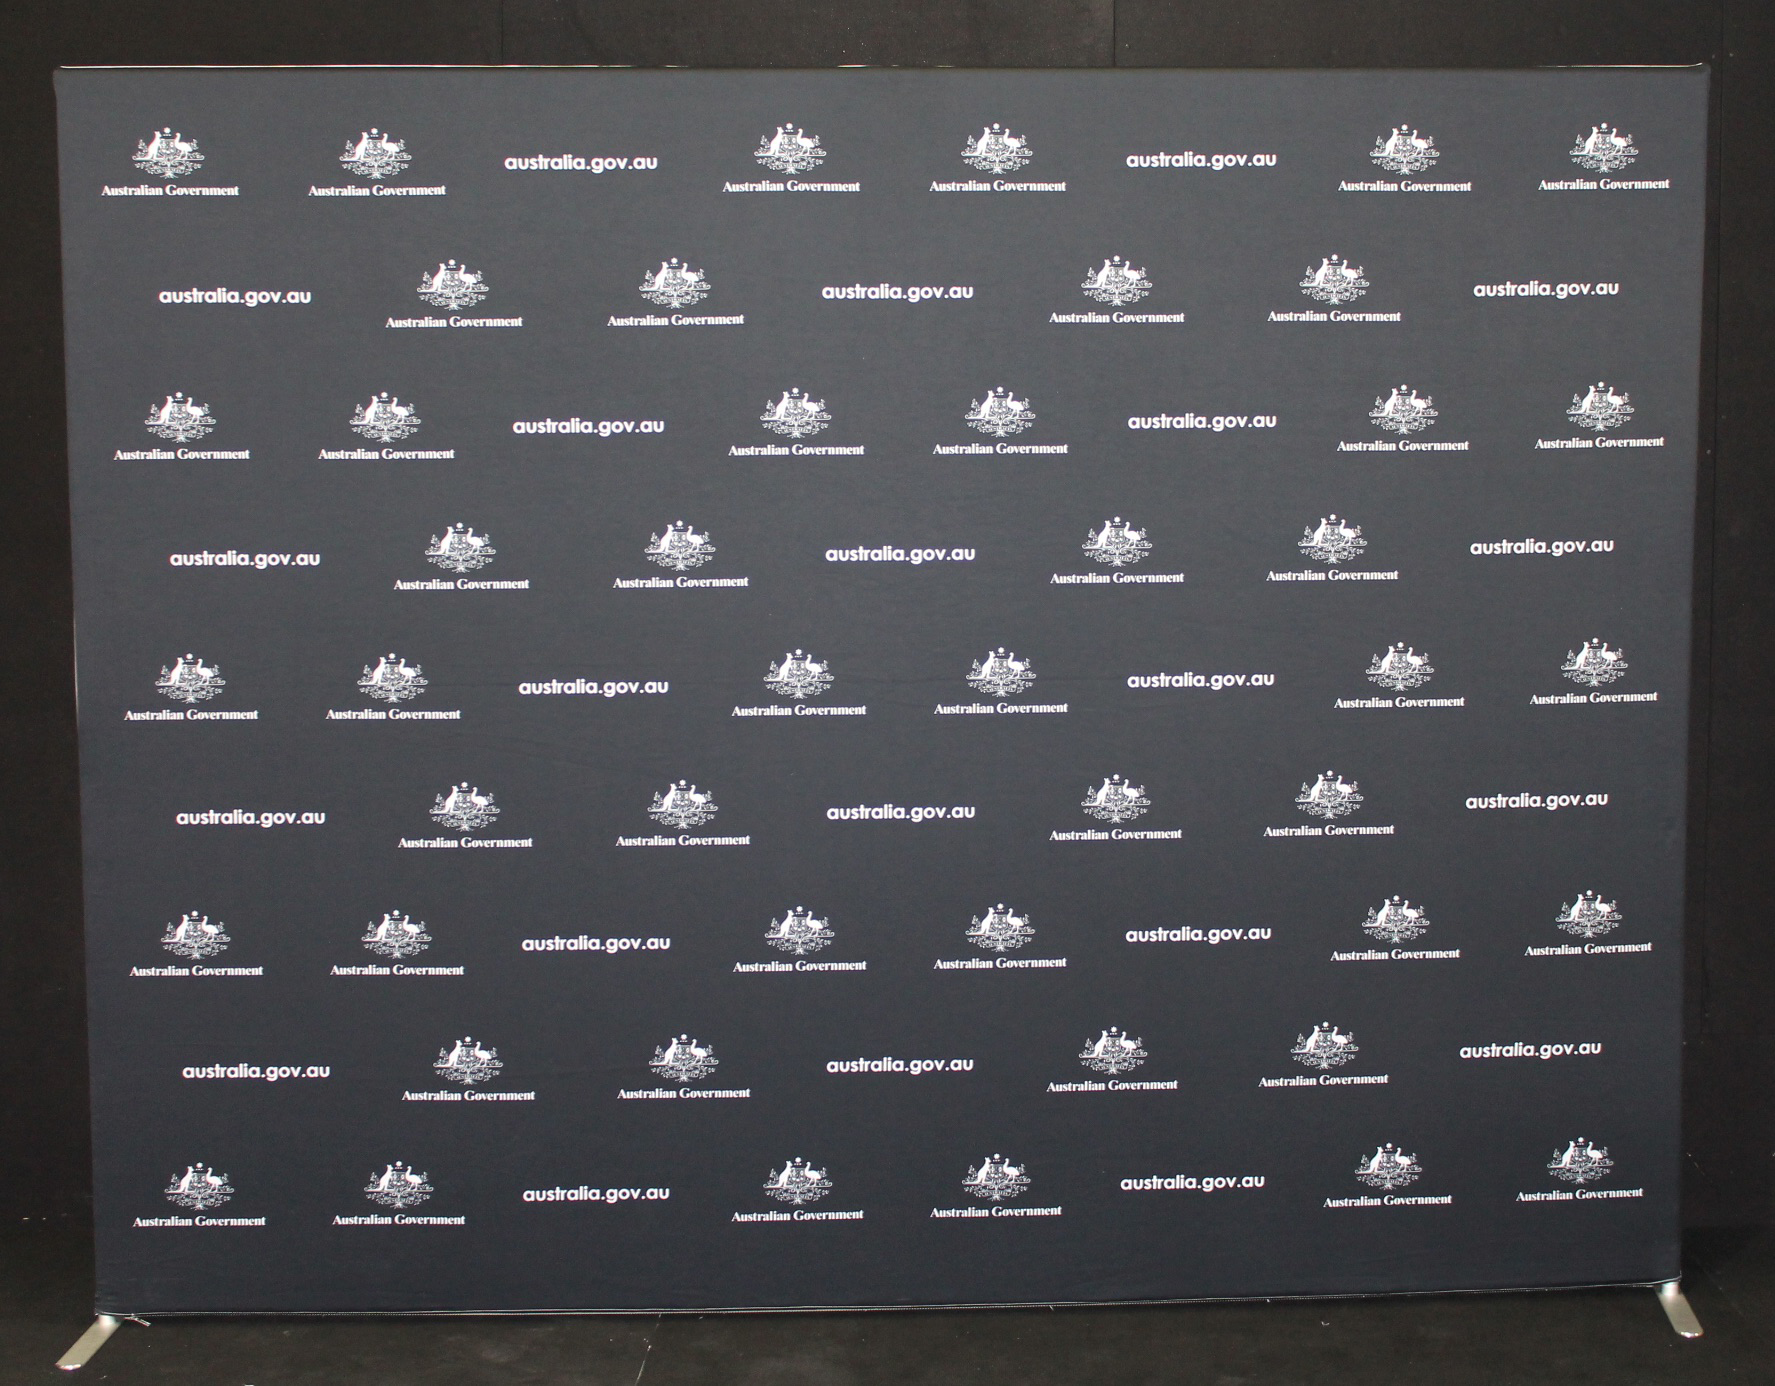 canberra-media-wall-banner